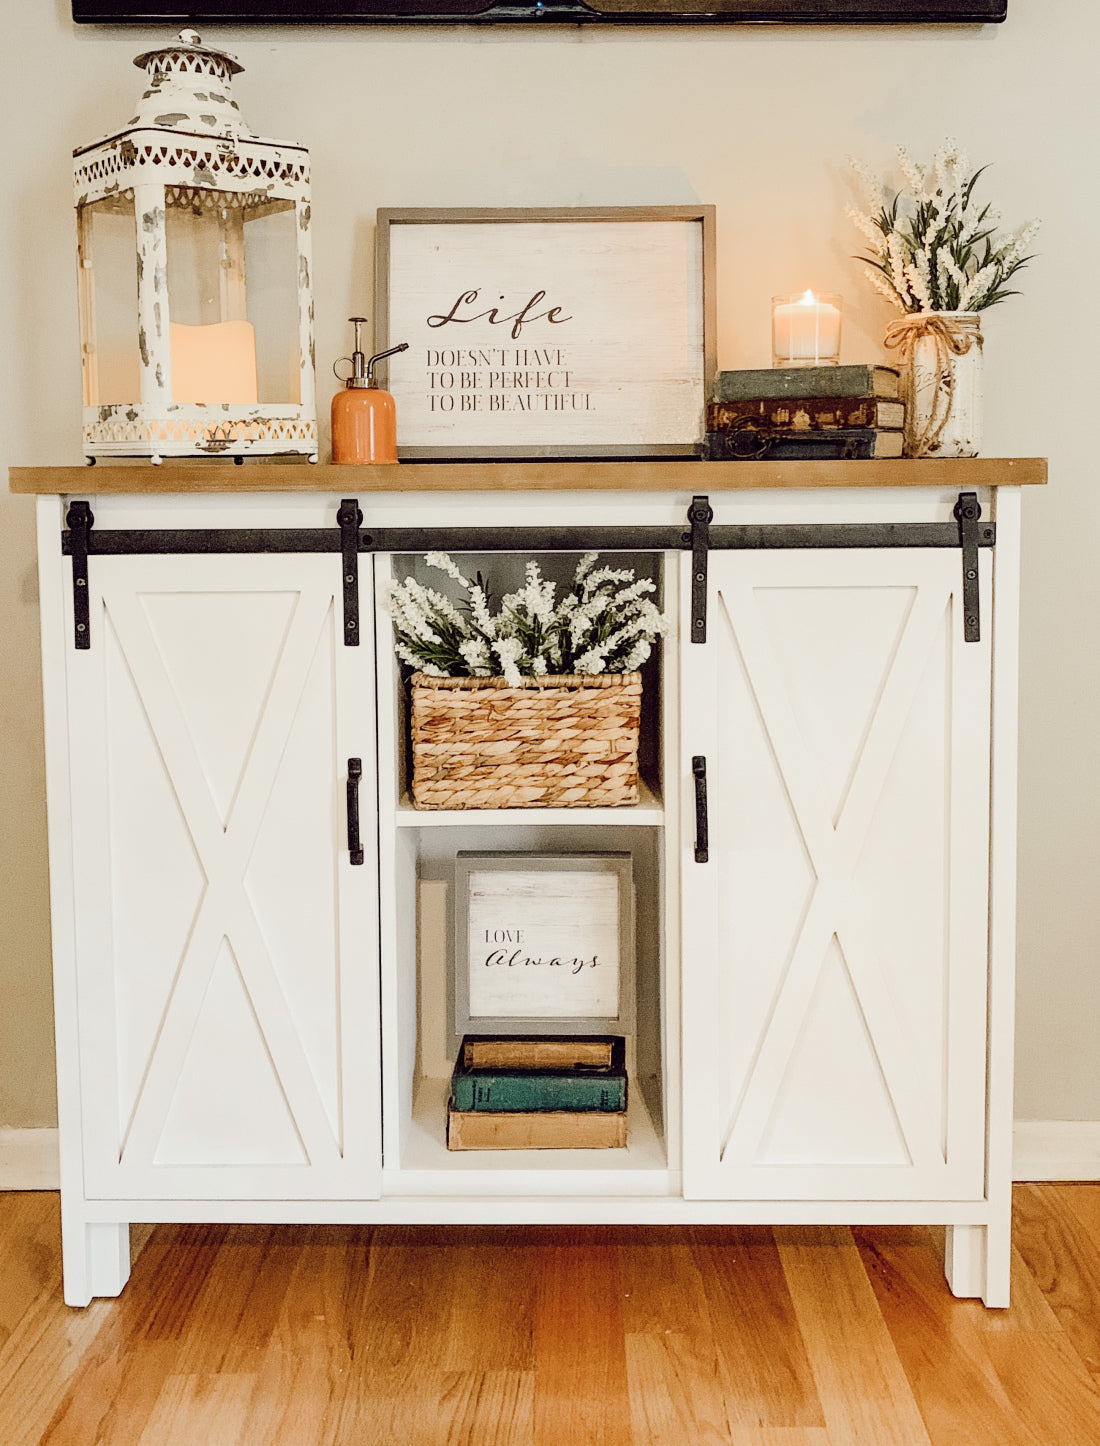 better, brighter storage for the entertainment center